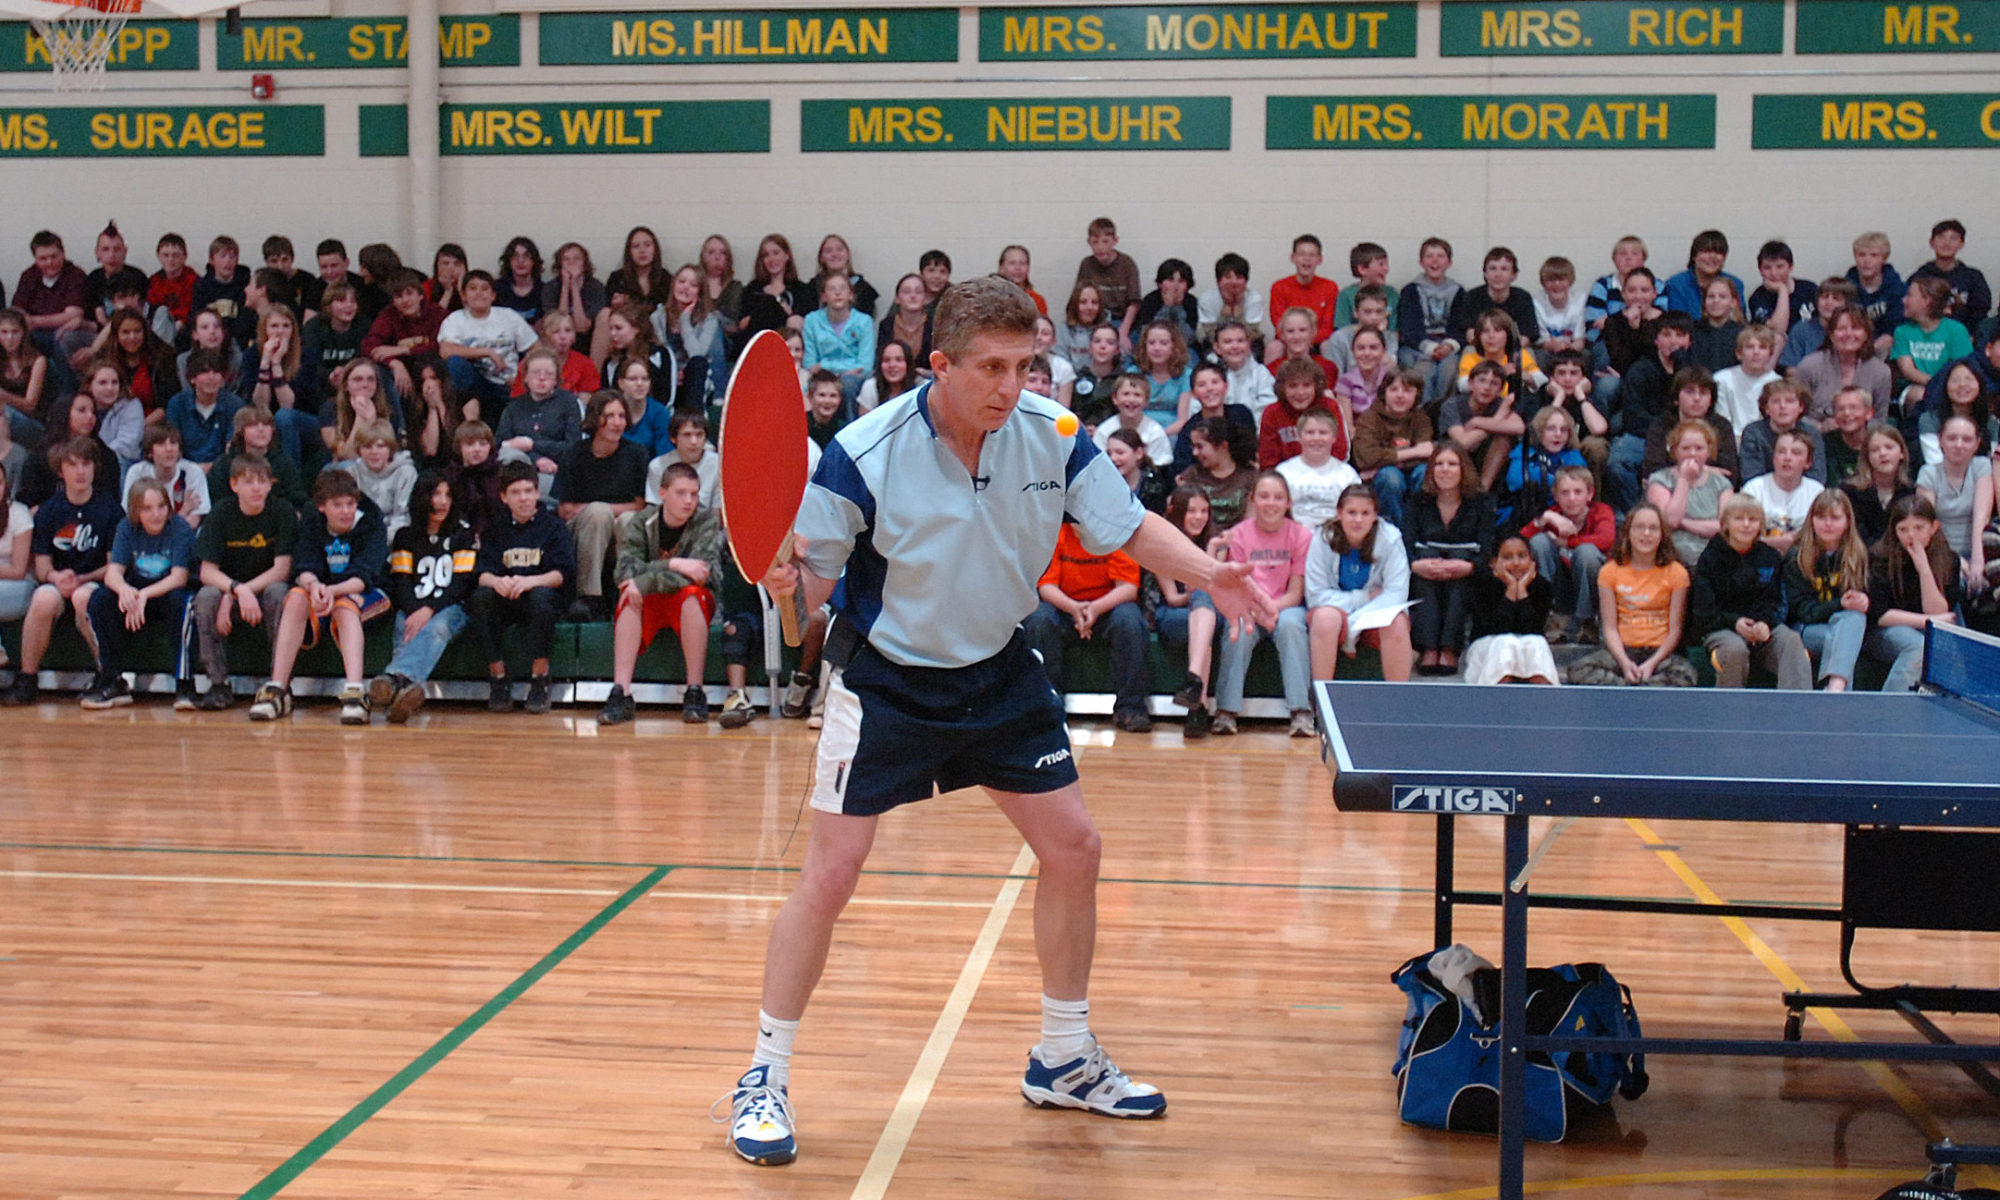 Spectacular World Class Table Tennis Exhibitions & Events